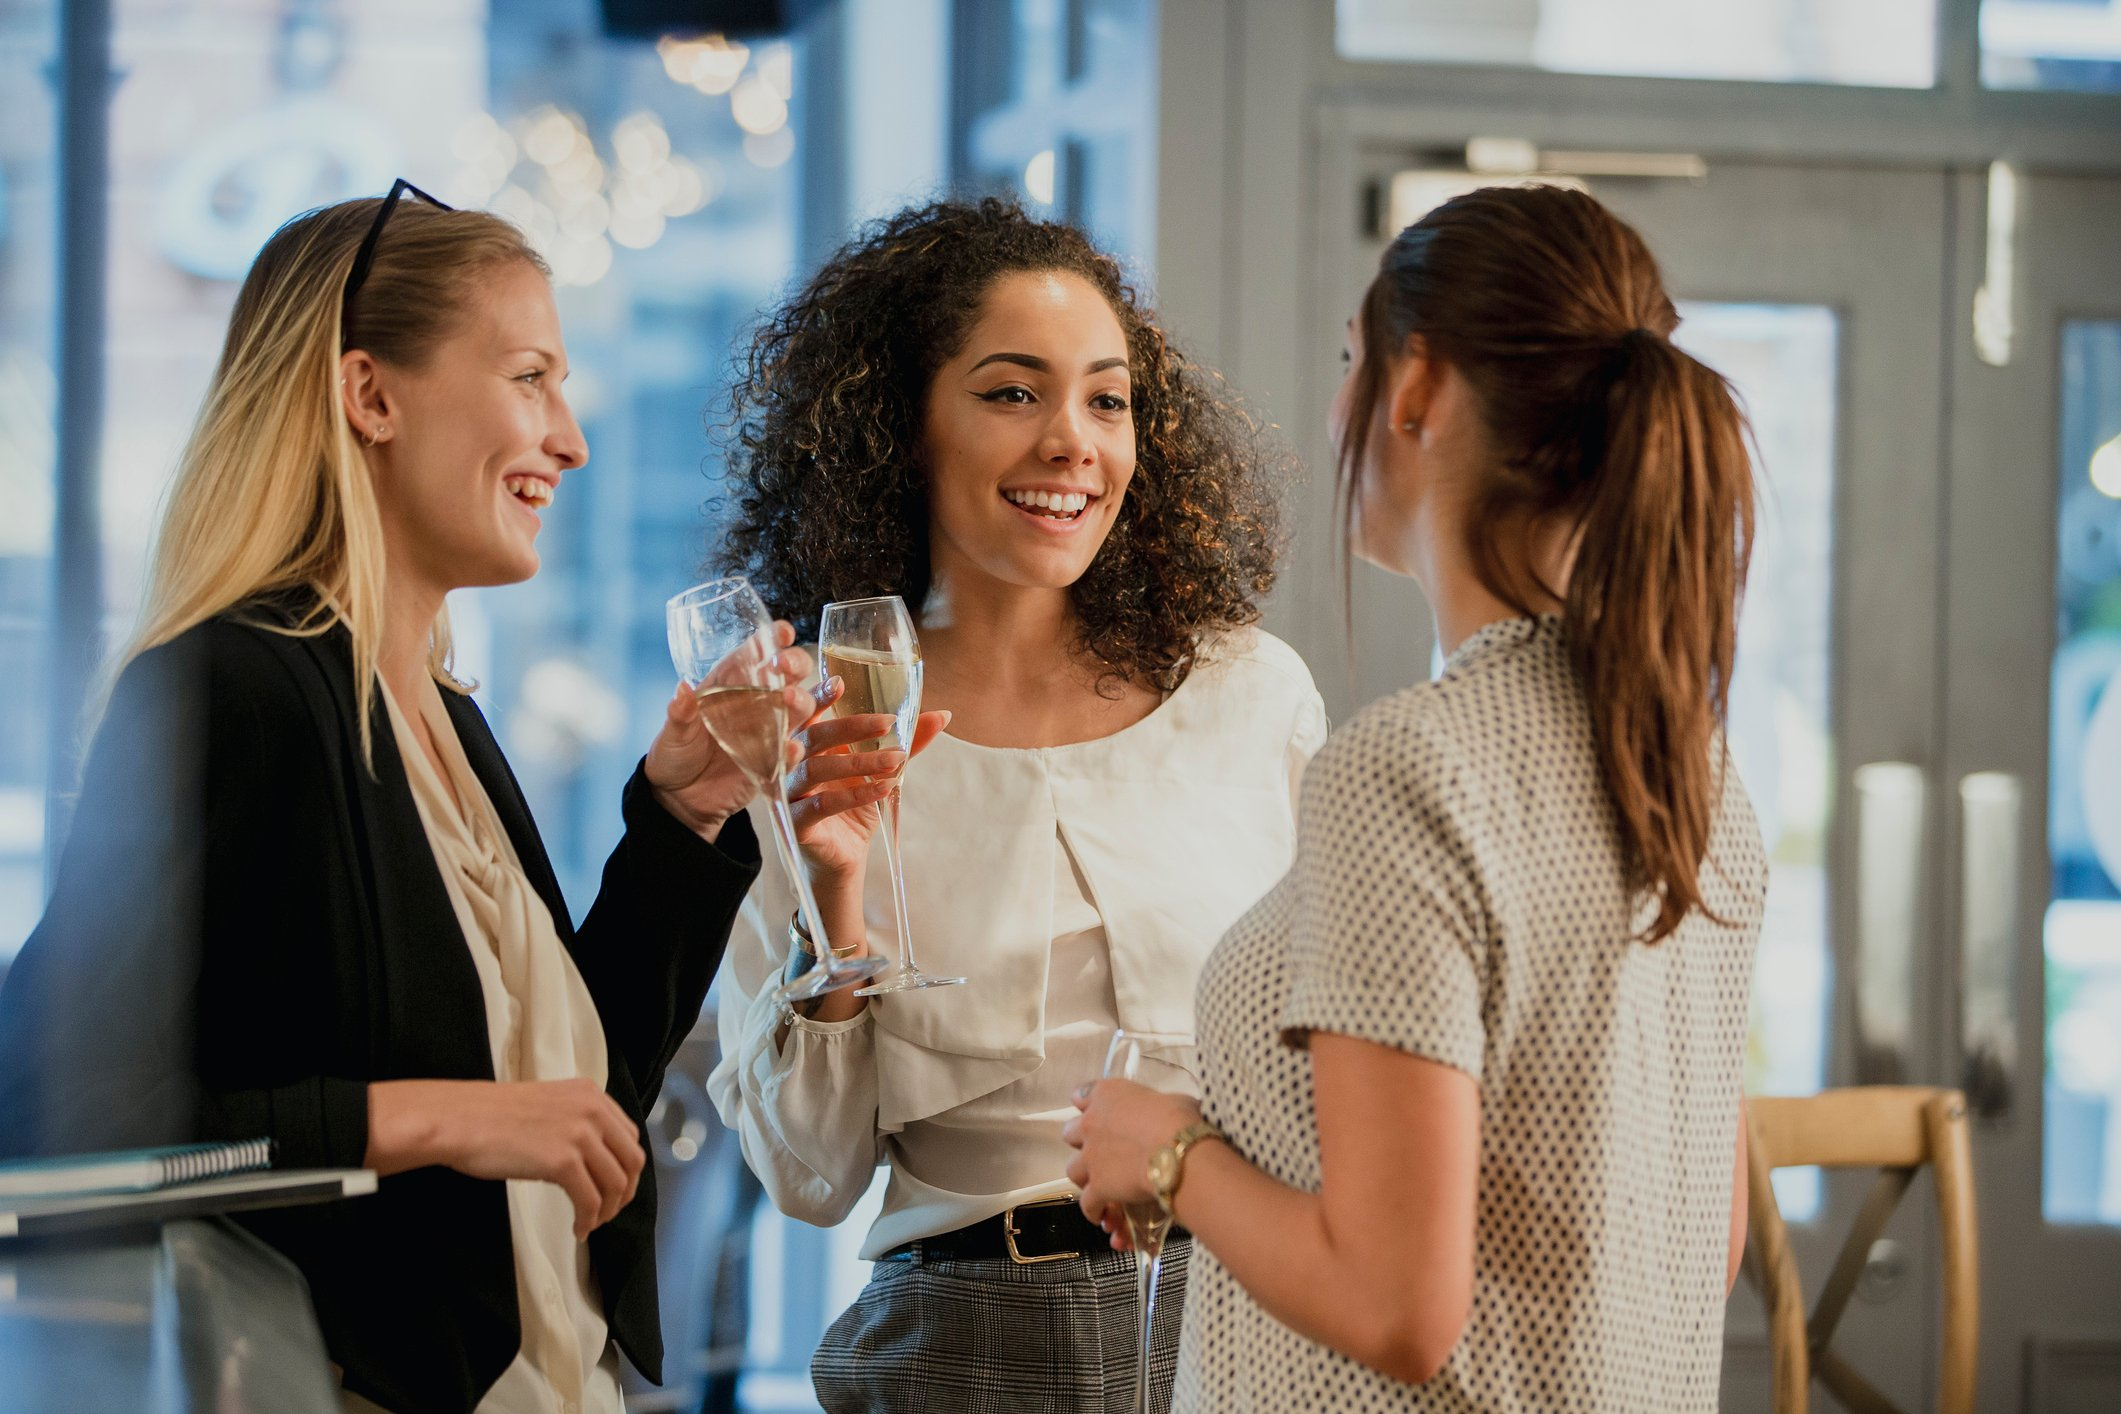 Women & Wealth Wine Tasting: Tune out the Noise and Tune into Your Long-Term Goals